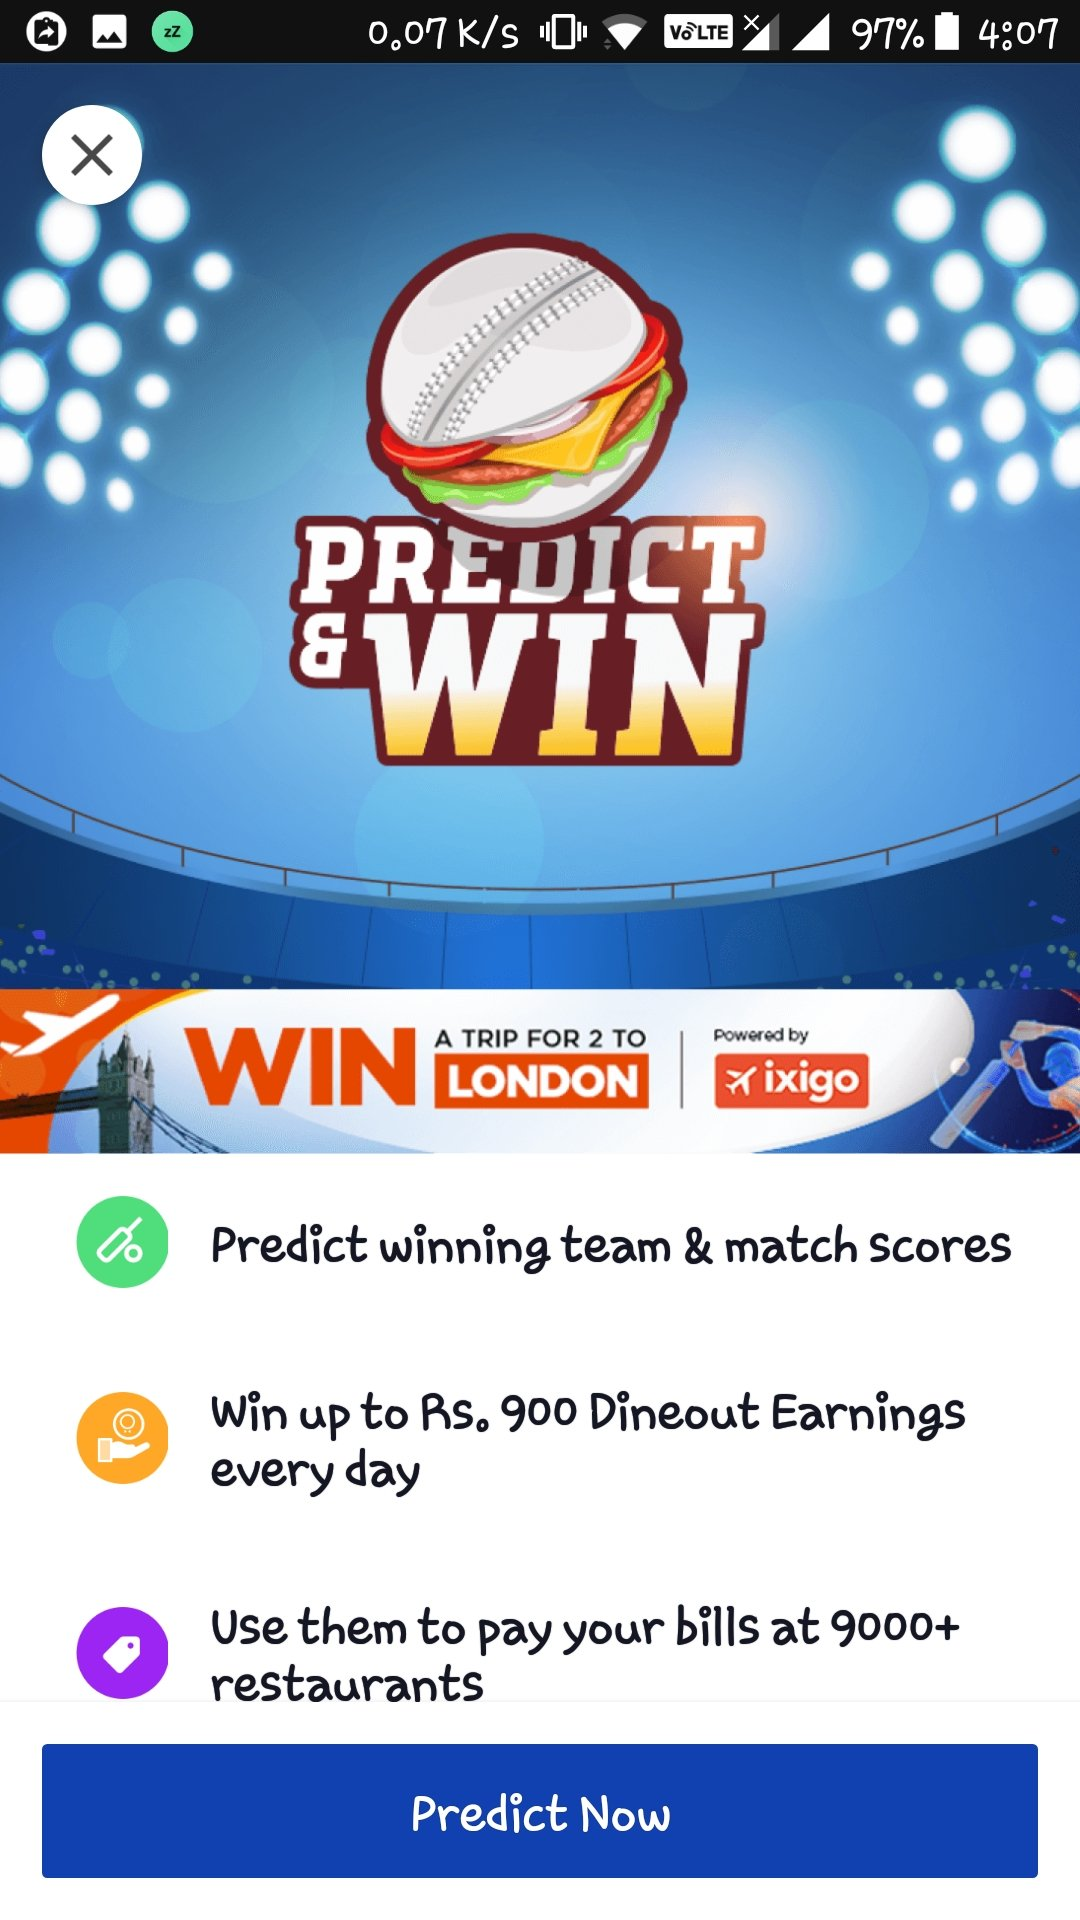 Dineout Predict and Win Rs 900 dineout earnings everyday during IPL